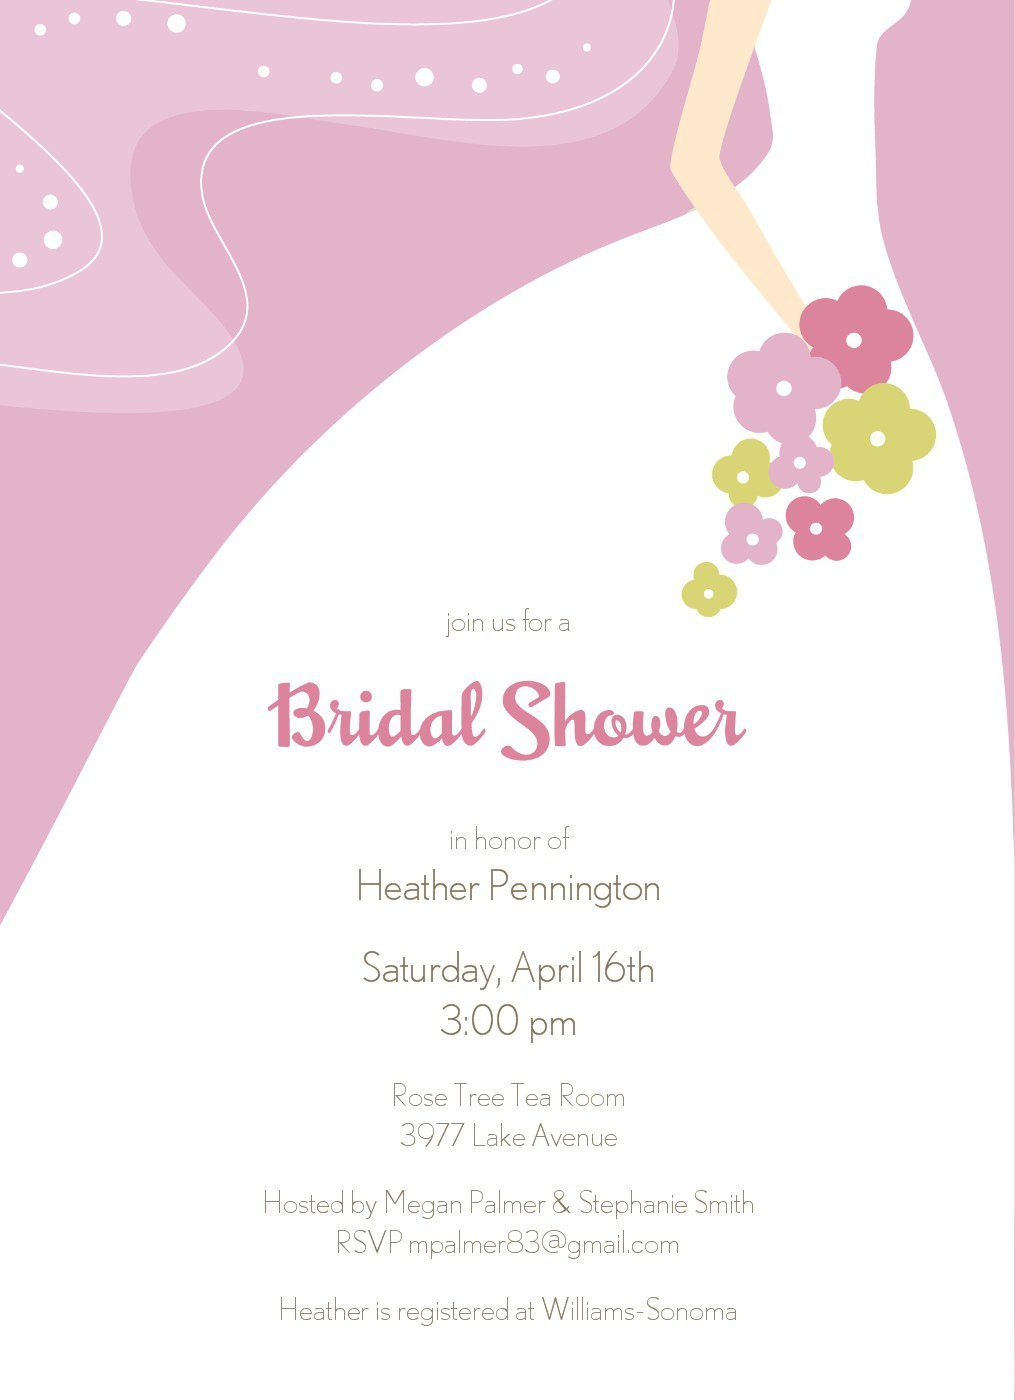 image about Free Printable Wedding Shower Invitations called absolutely free printable bridal shower invitation templates for term